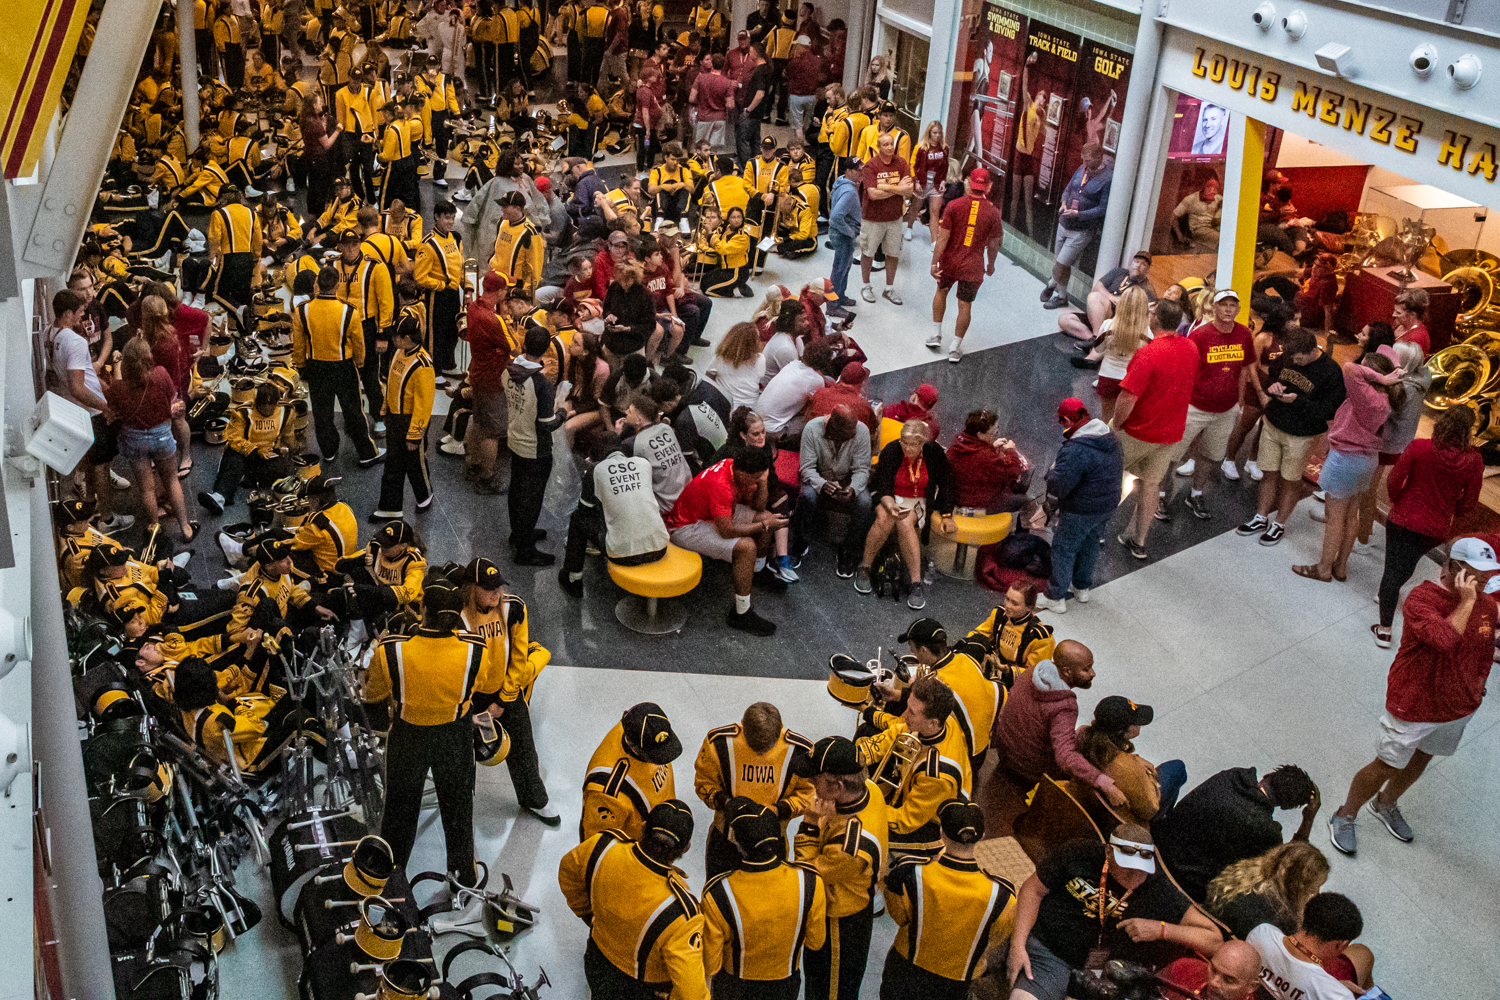 Marching band members escape the rain during a football game between Iowa and Iowa State at Jack Trice Stadium in Ames on Sept. 14, 2019.